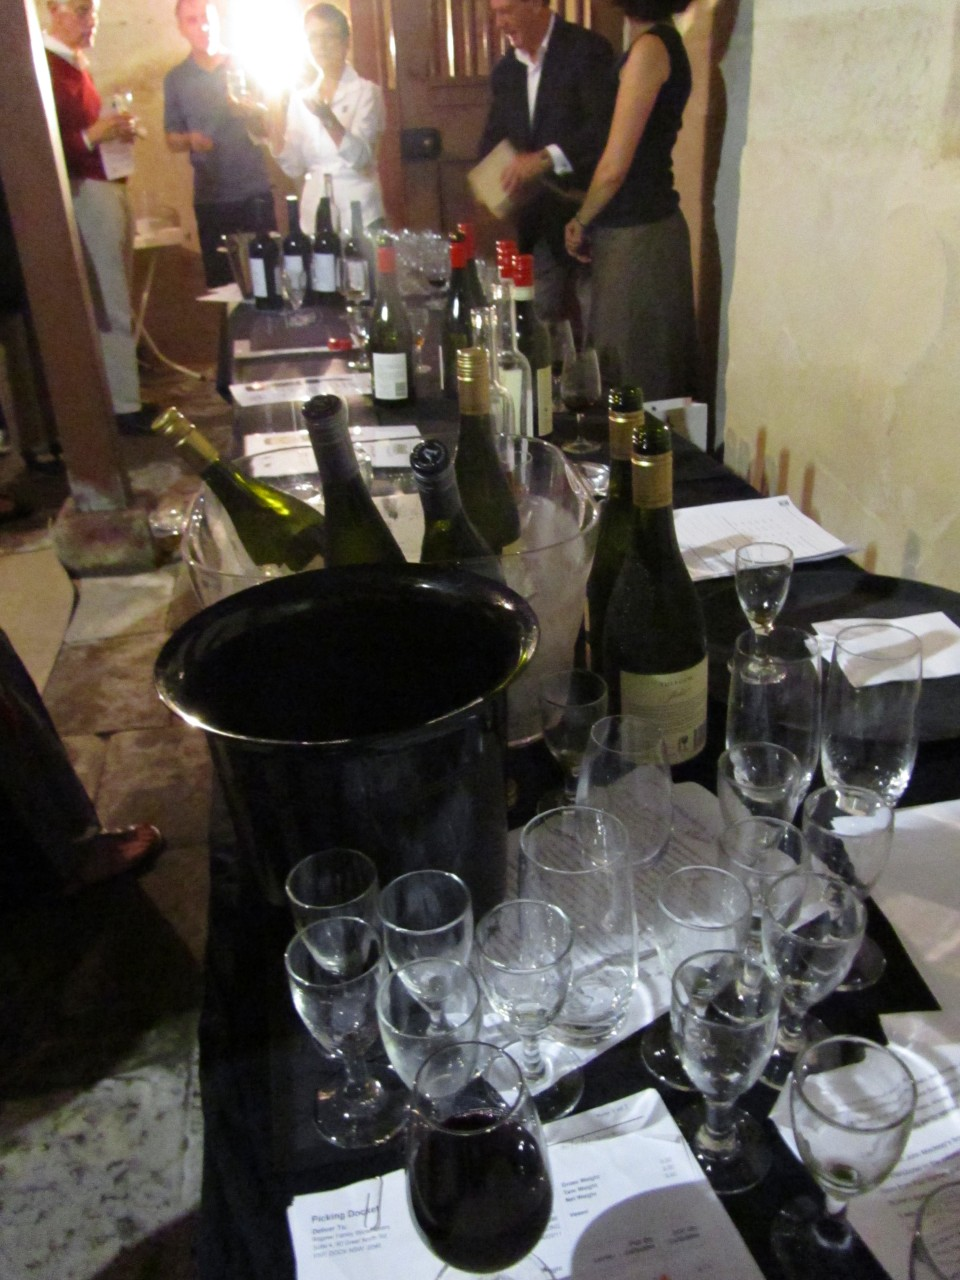 Tasting in the cellar at Elizabeth Bay House